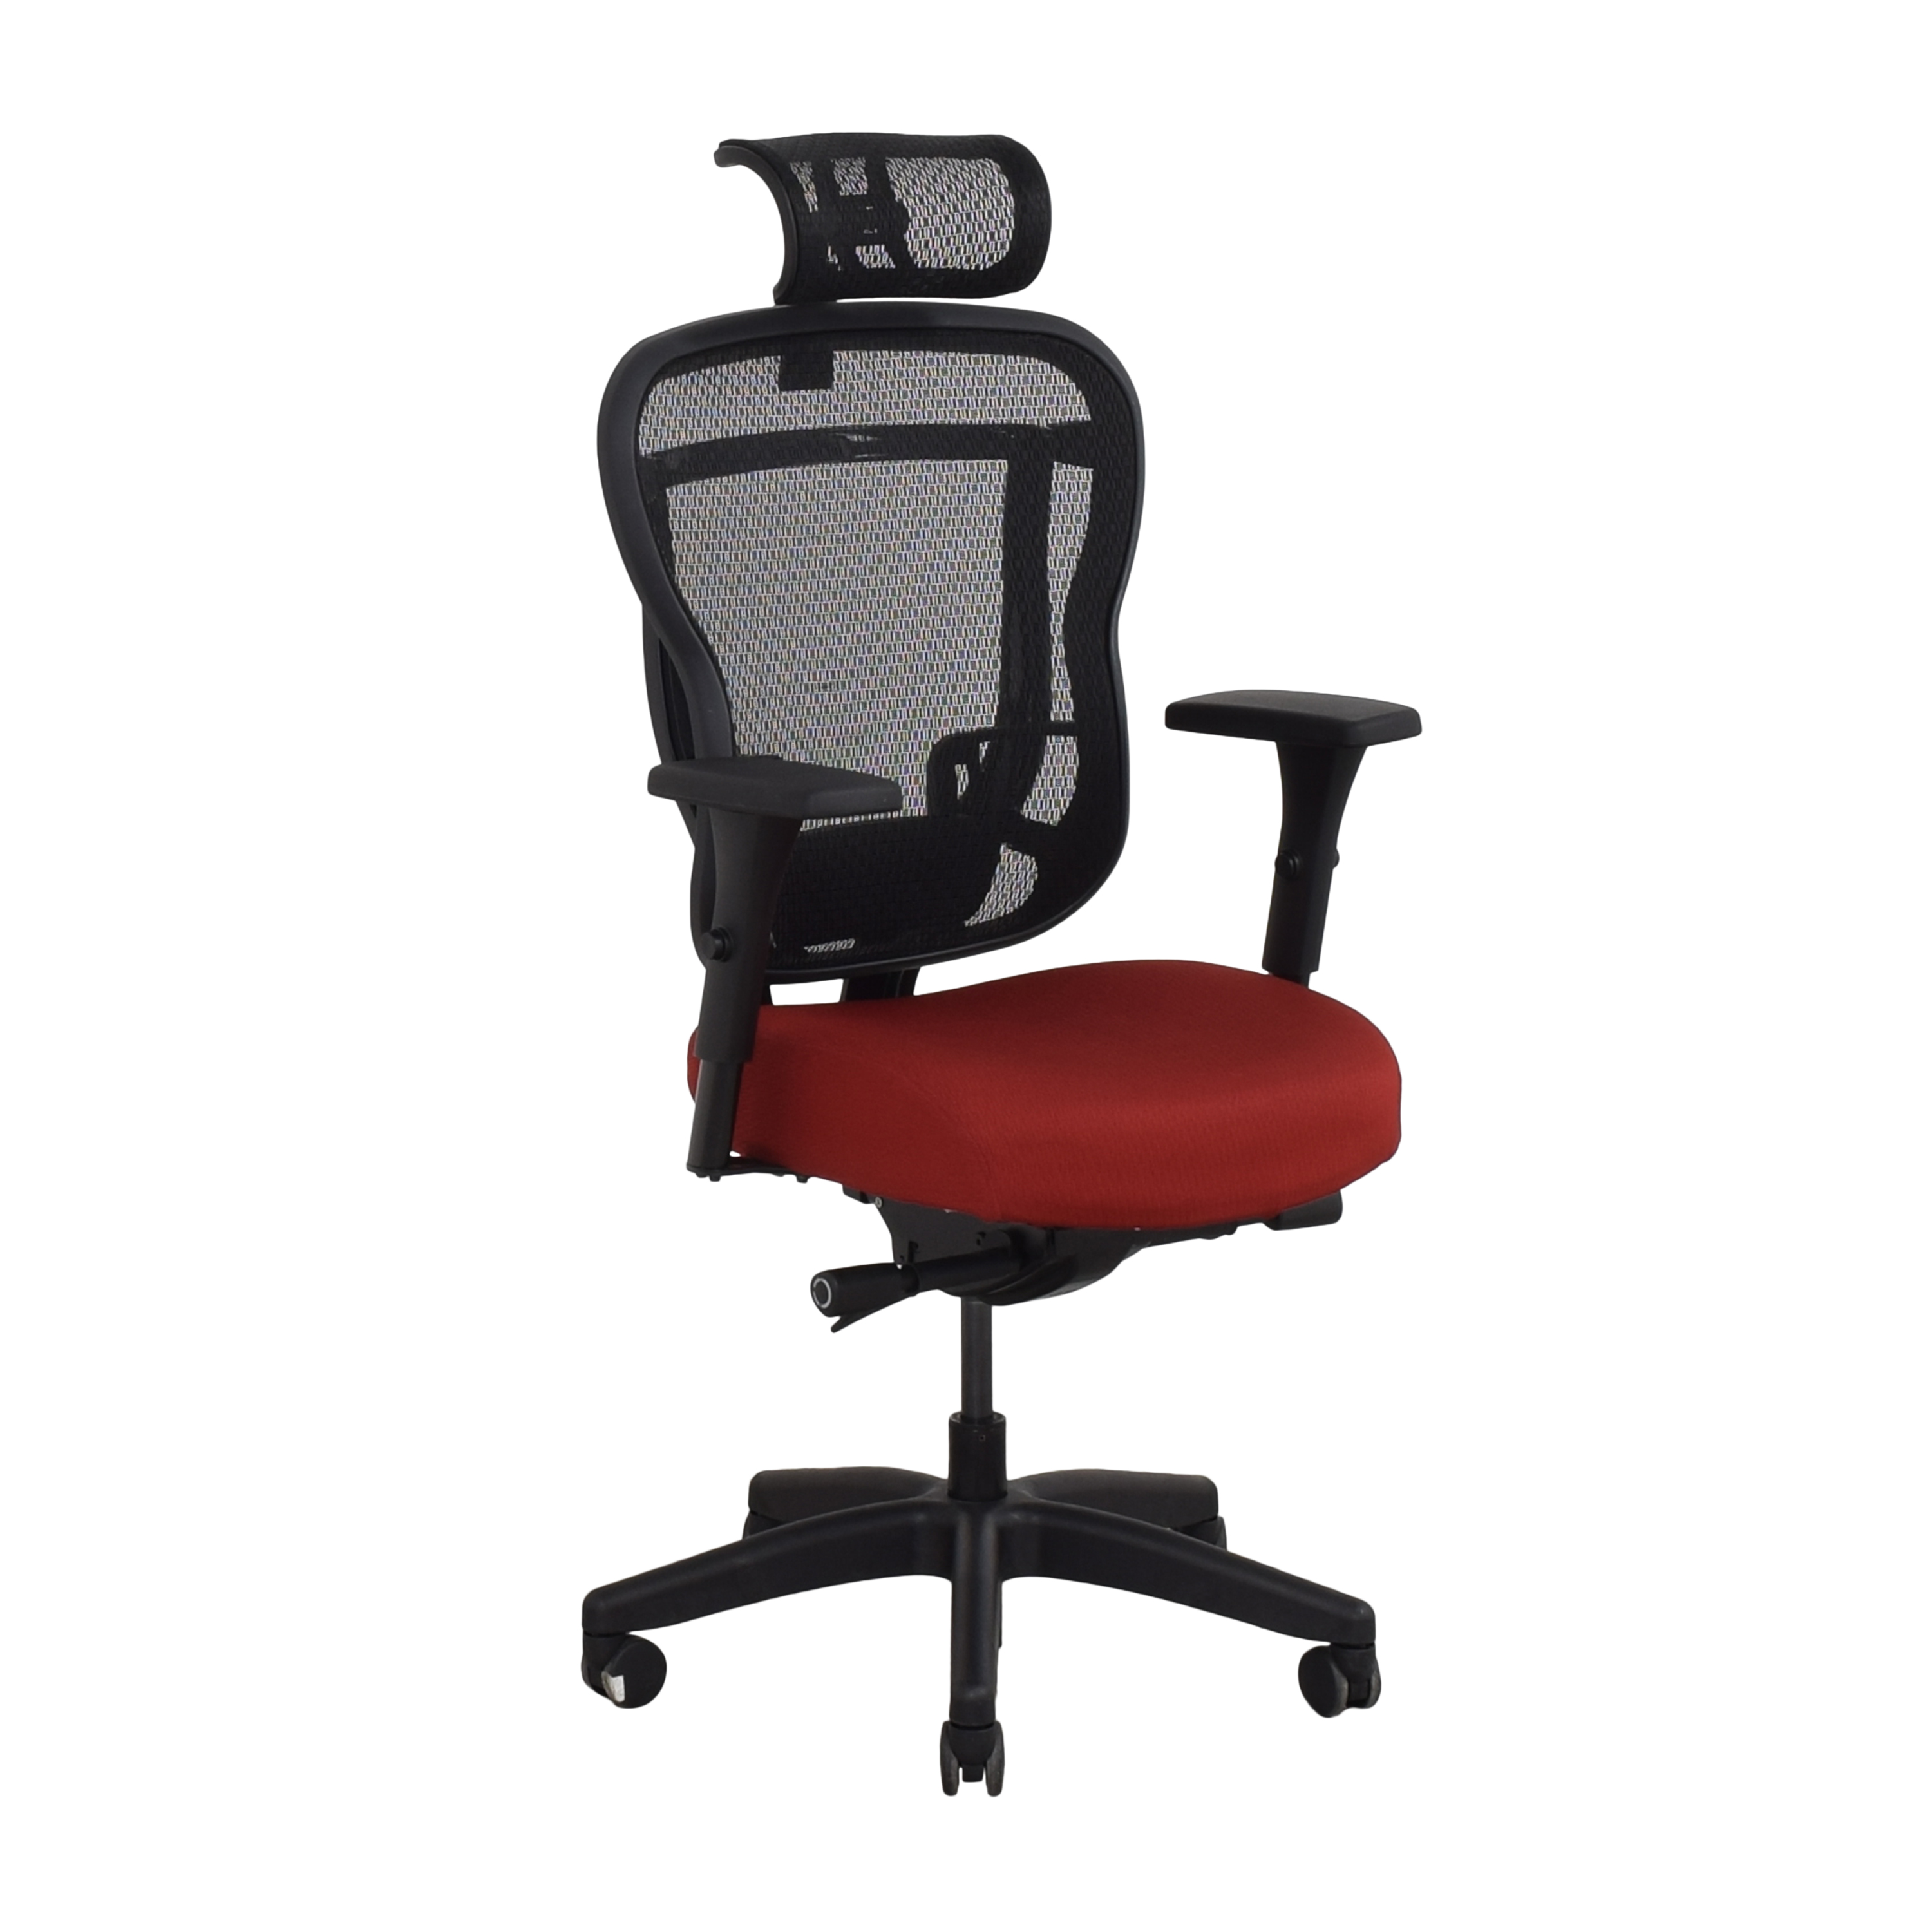 buy Buzz Seating Rika Adjustable Task Chair Buzz Seating Chairs